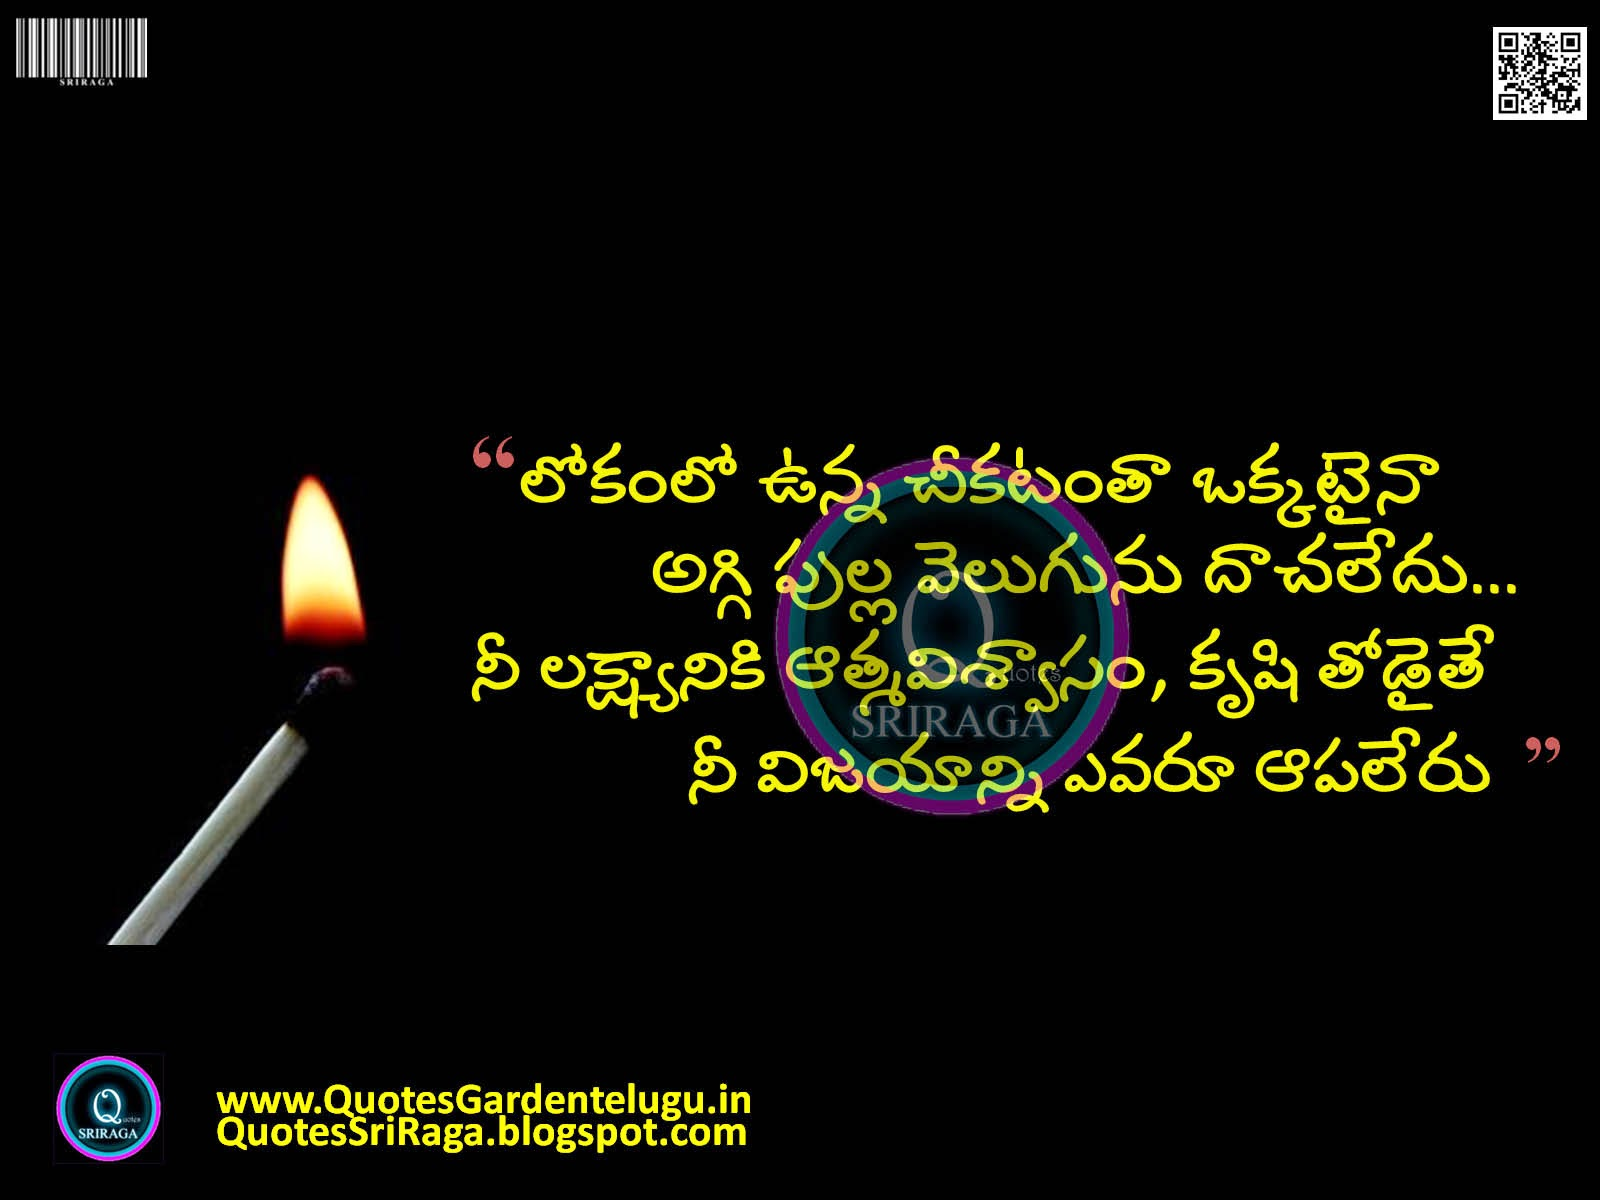 Inspirational Life Quotes In Telugu With Hd Wallpapers